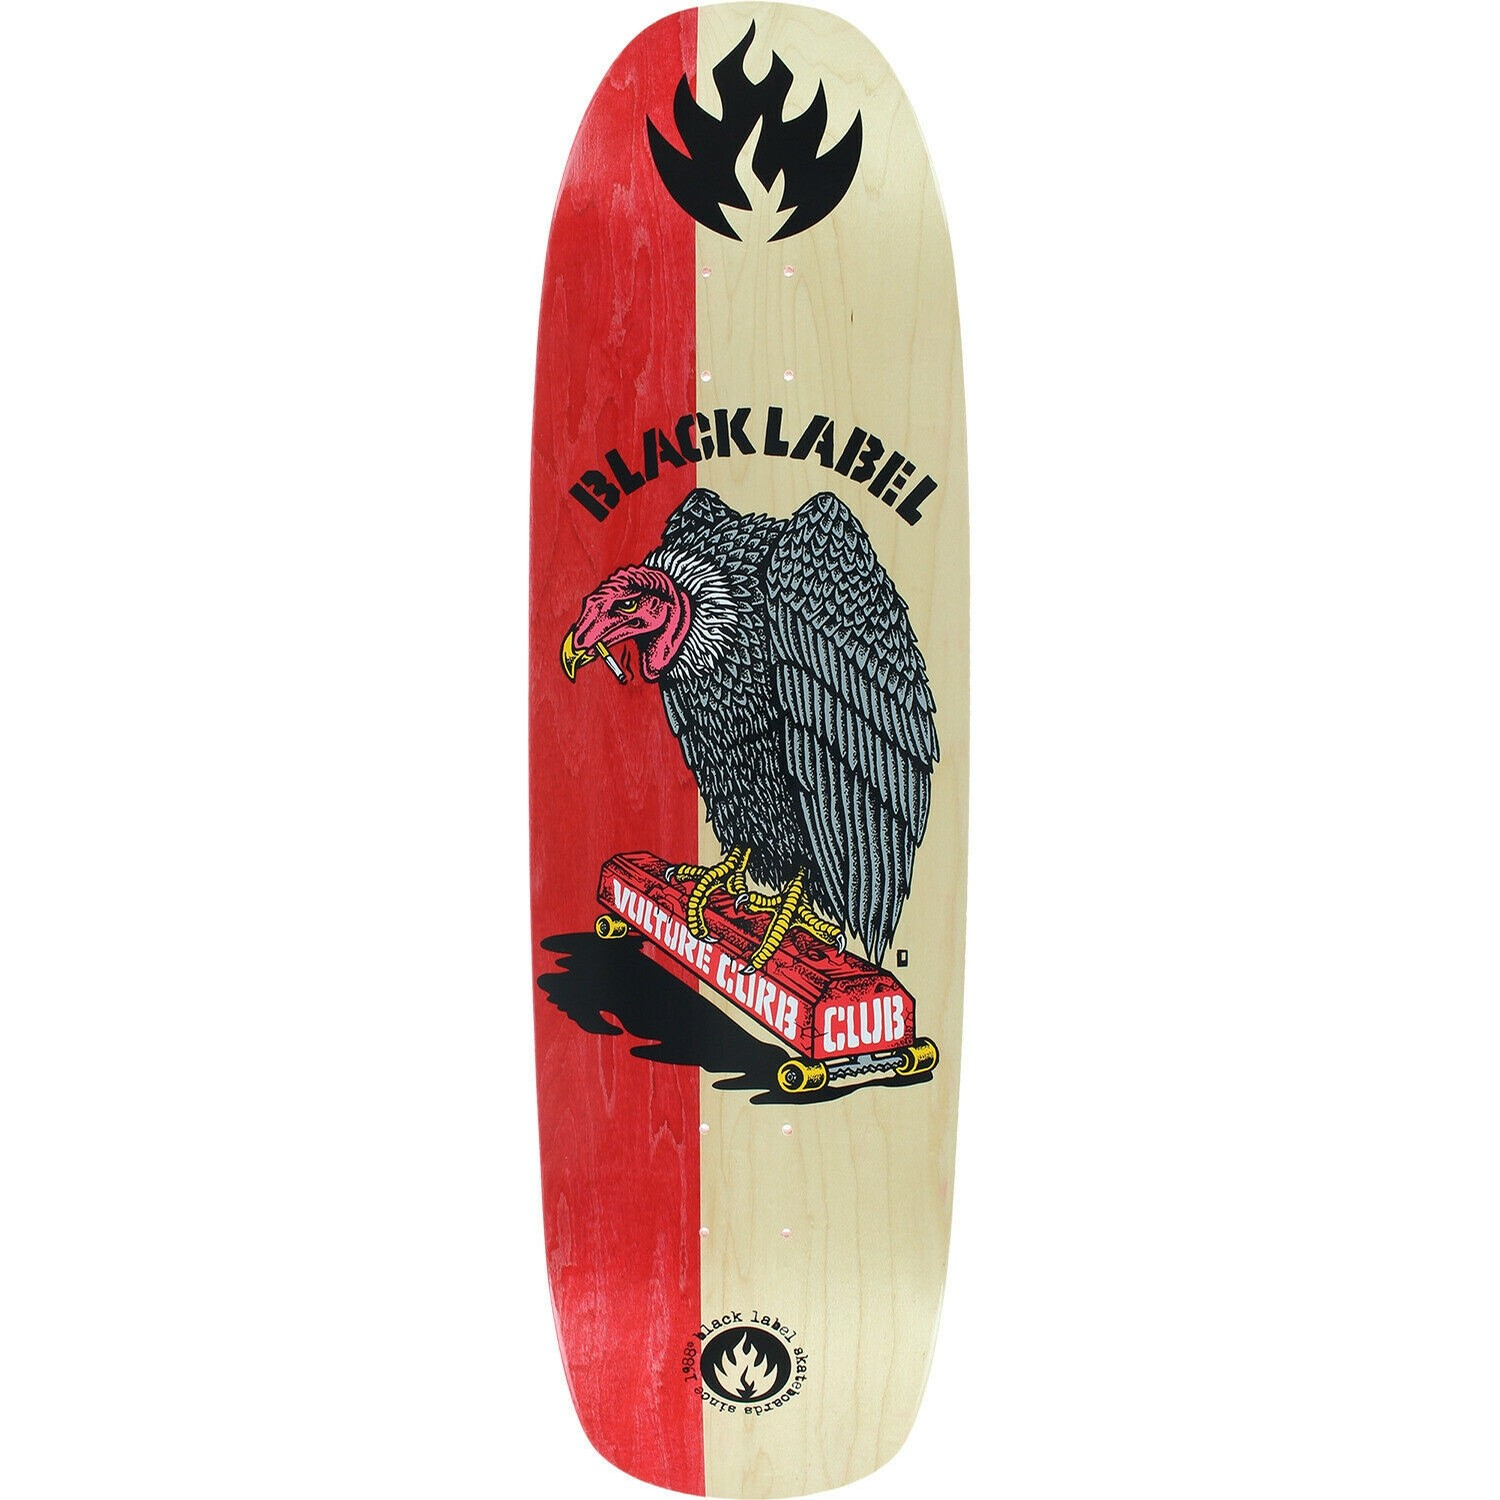 Vulture Curb Club Deck